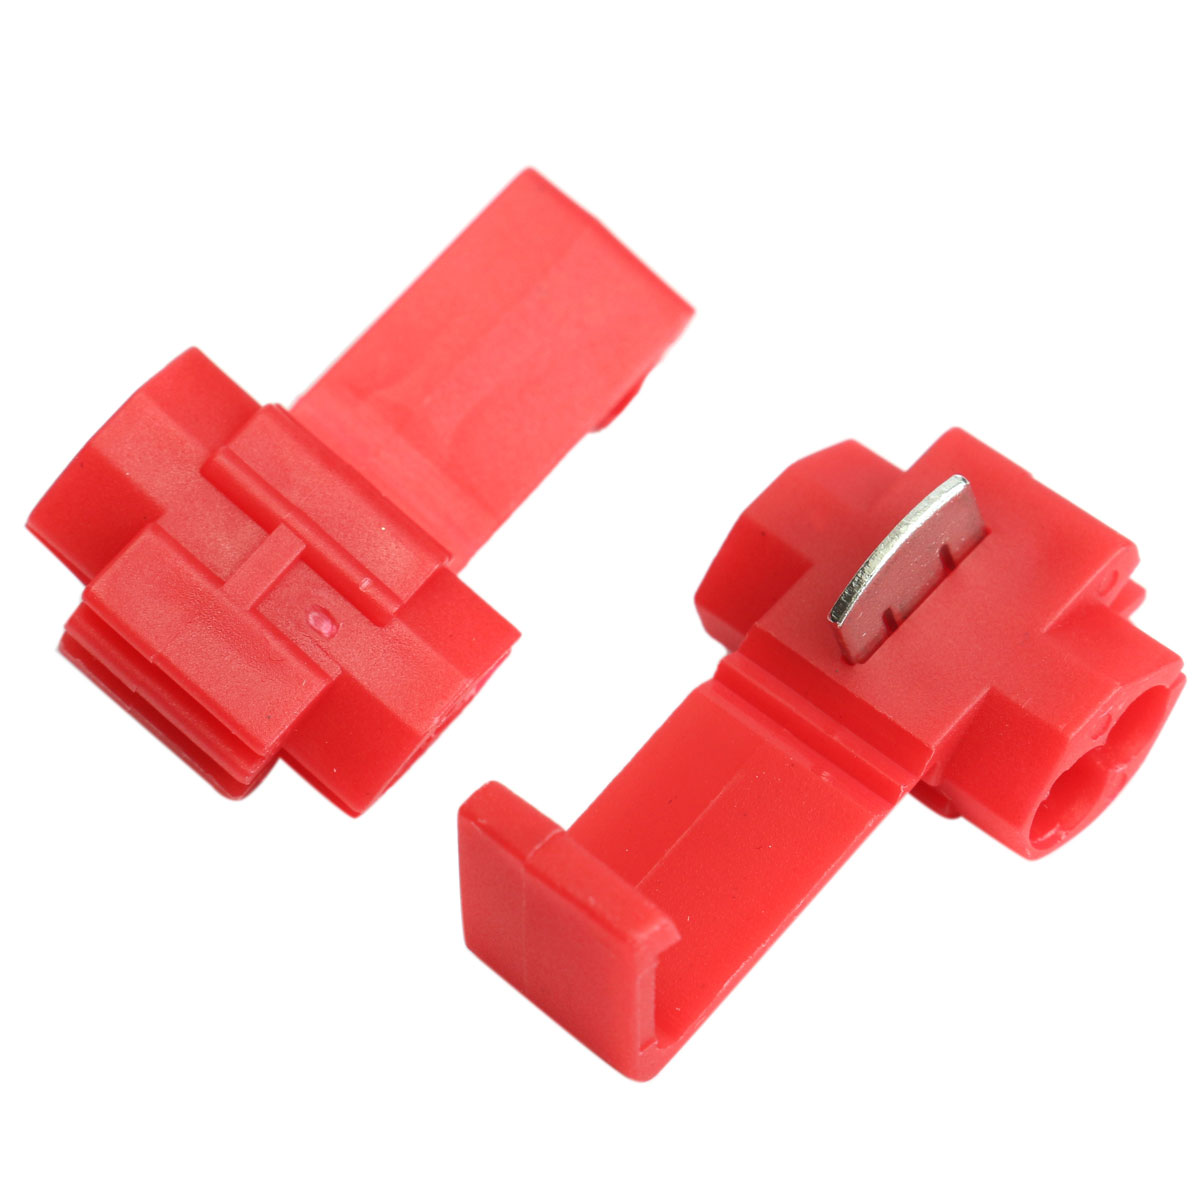 Electrical Wire Connectors : Pcs lock wire electrical cable connector quick splice